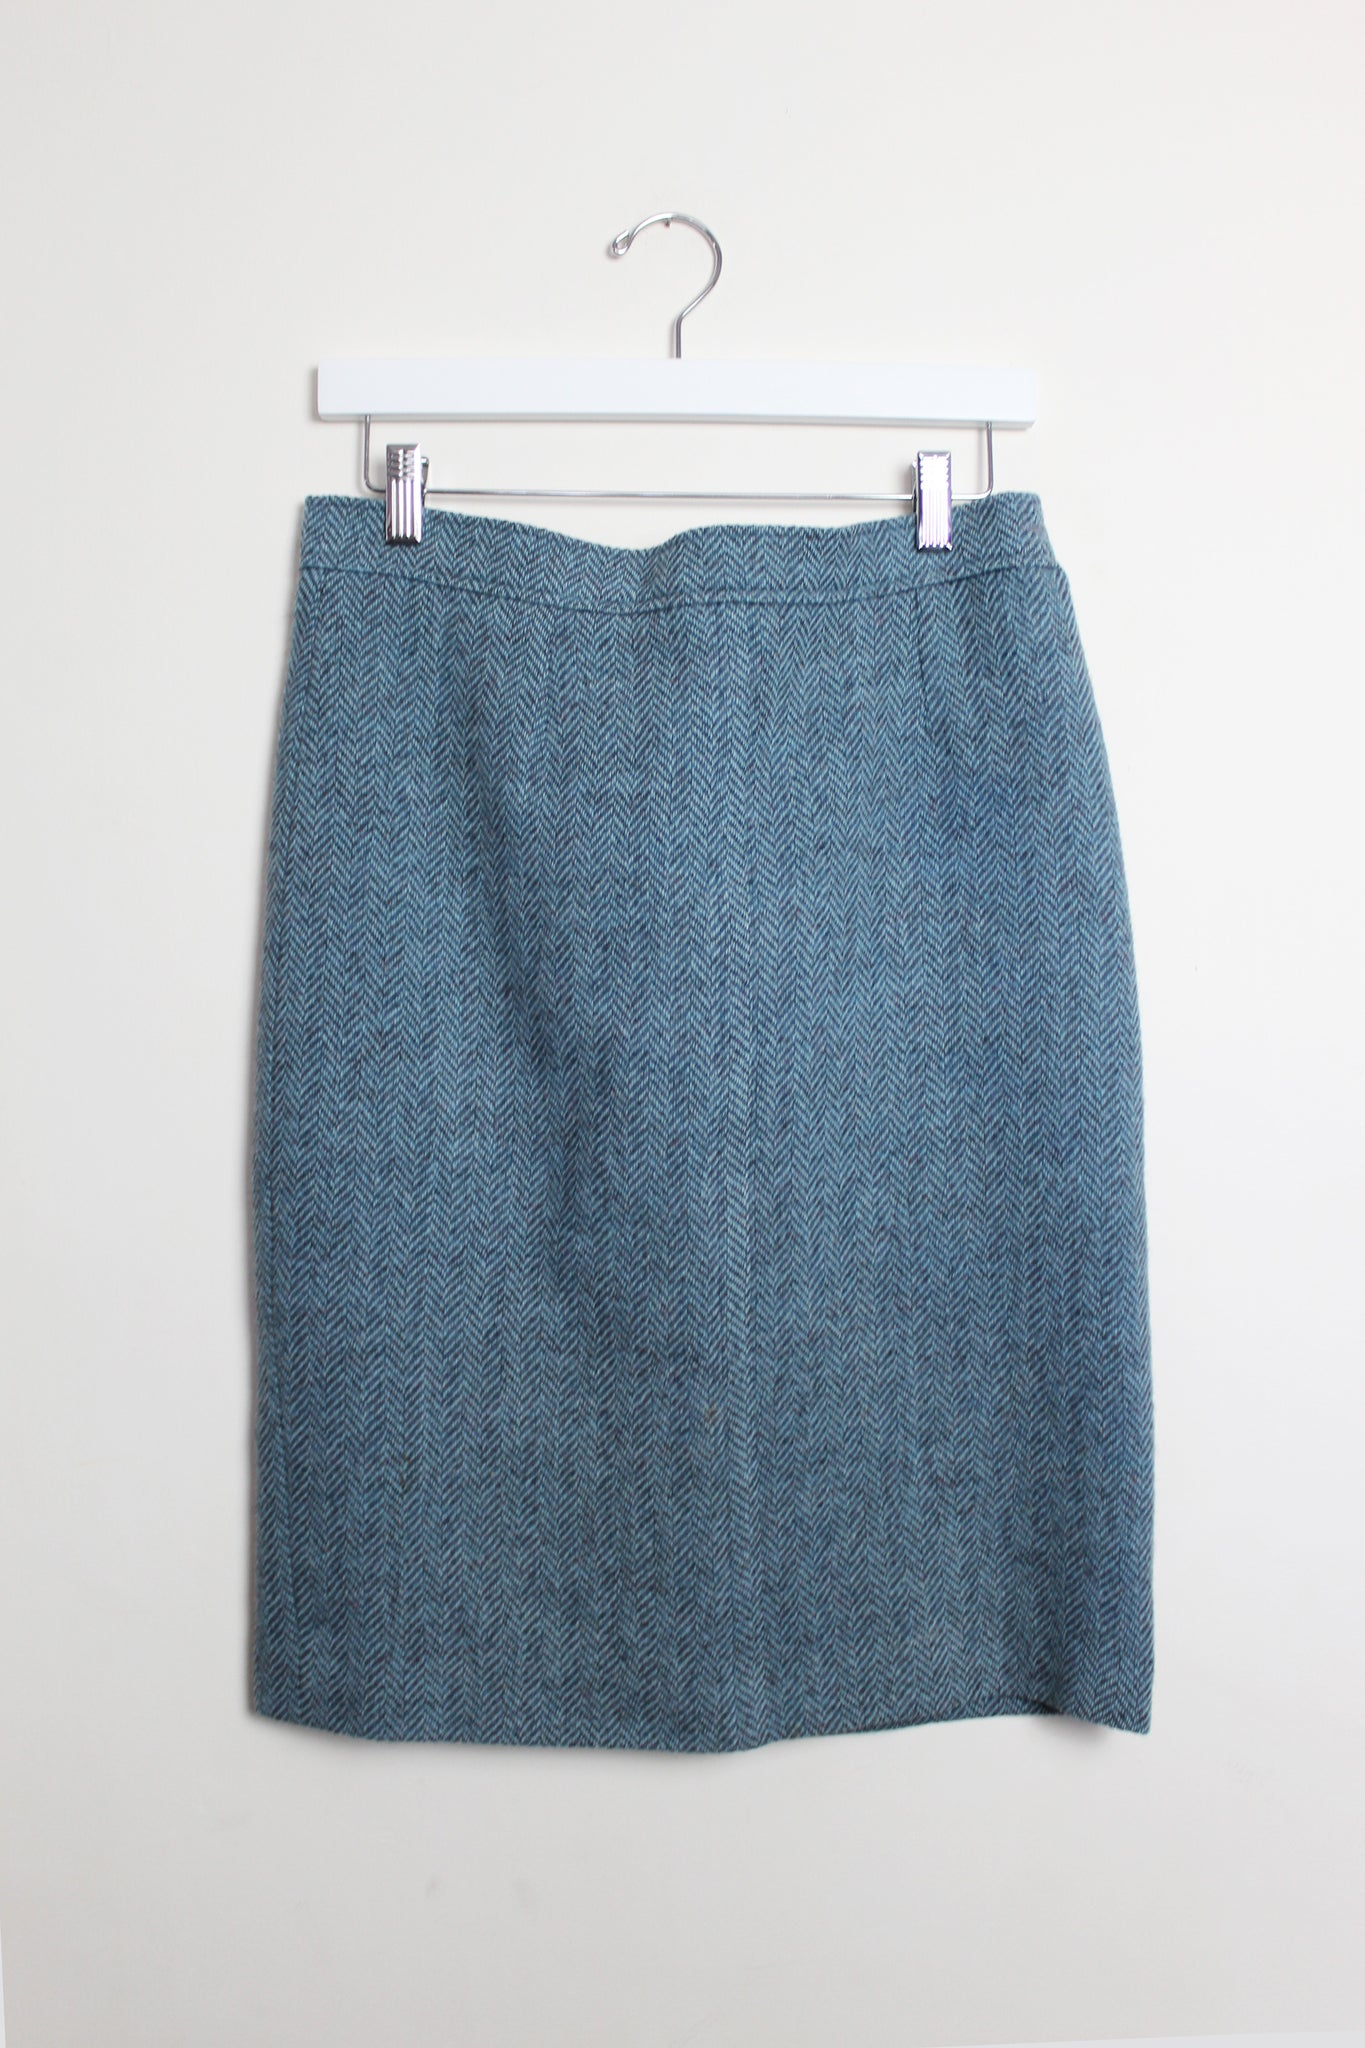 Yves Saint Laurent Tweed Pencil Skirt